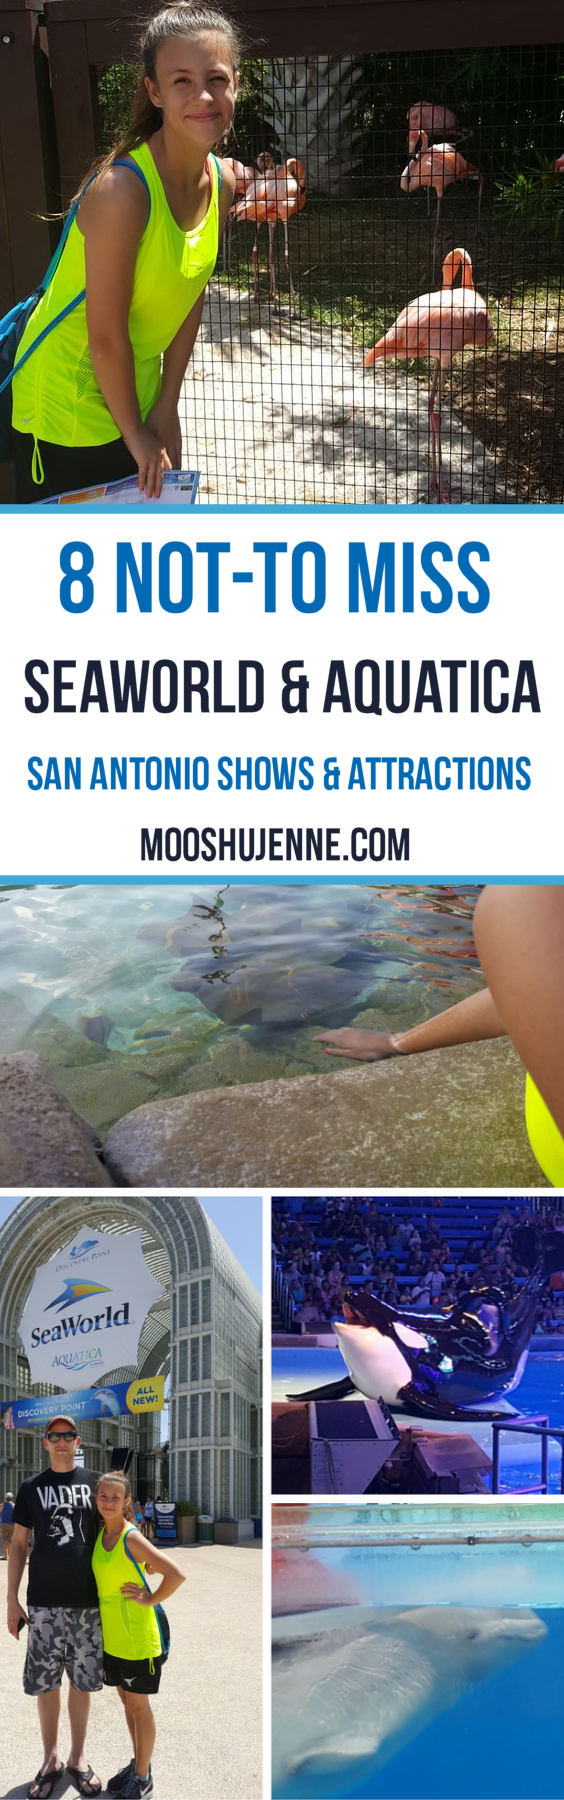 8 not-to miss SeaWorld & Aquatica San Antonio Shows & Attractions